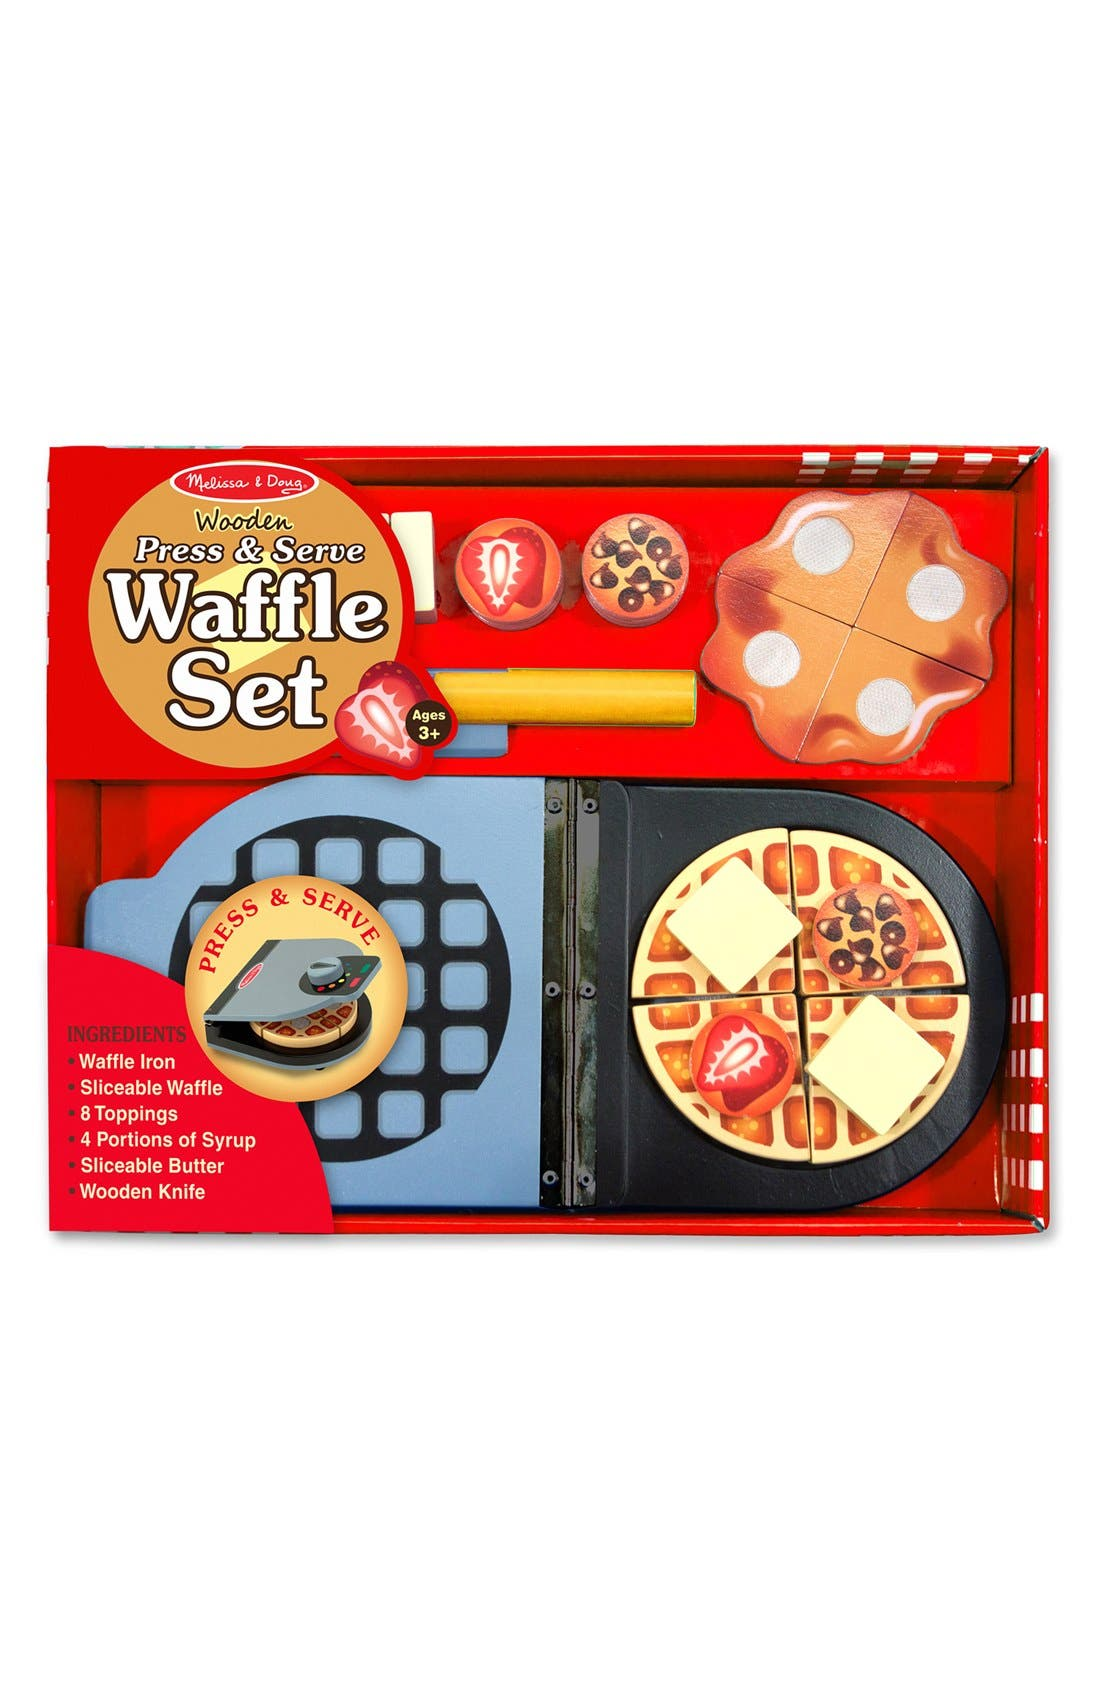 Melissa & Doug 'Press & Serve' Wooden Waffle Set